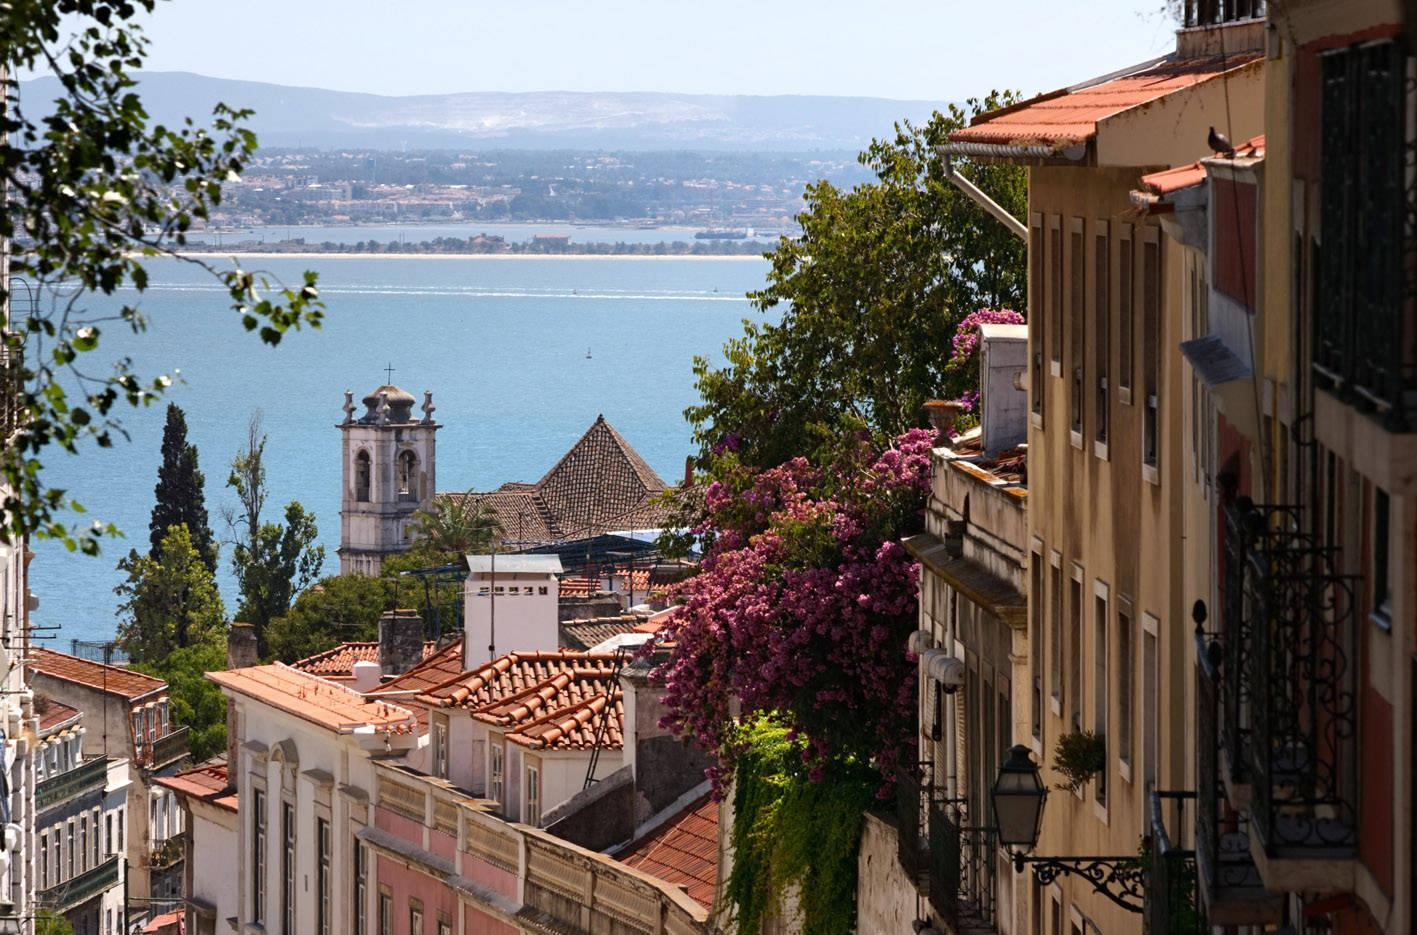 "<p>Want a cheap European city break in 2014? Look no further than Portuguese capital <a href=""http://travel.aol.co.uk/tag/lisbon/"" target=""_blank"">Lisbon</a>, which continues to grow among UK travellers after Post Office Travel Money's annual City Costs Barometer named it the best place for an affordable city break in the Eurozone. Most recently, Lisbon was voted Europe's Leading City Break Destination 2013 at the Oscars of tourism, the World Travel Awards. And we can see why. With year-round pleasant climate, rich culture and beaches, plus bargain flights from the UK with <a href=""http://www.easyjet.com/cheap-flights/portugal/lisbon"" target=""_blank"">easyJet</a>, <a href=""http://www.britishairways.com/en-gb/destinations/lisbon/flights-to-lisbon"" target=""_blank"">British Airways</a>, <a href=""http://www.ryanair.com/en"" target=""_blank"">Ryanair</a> and <a href=""http://www.flytap.com/UnitedKingdom/en/Homepage"" target=""_blank"">TAP Portugal</a>, Lisbon is ideal for a long weekend away.</p>"